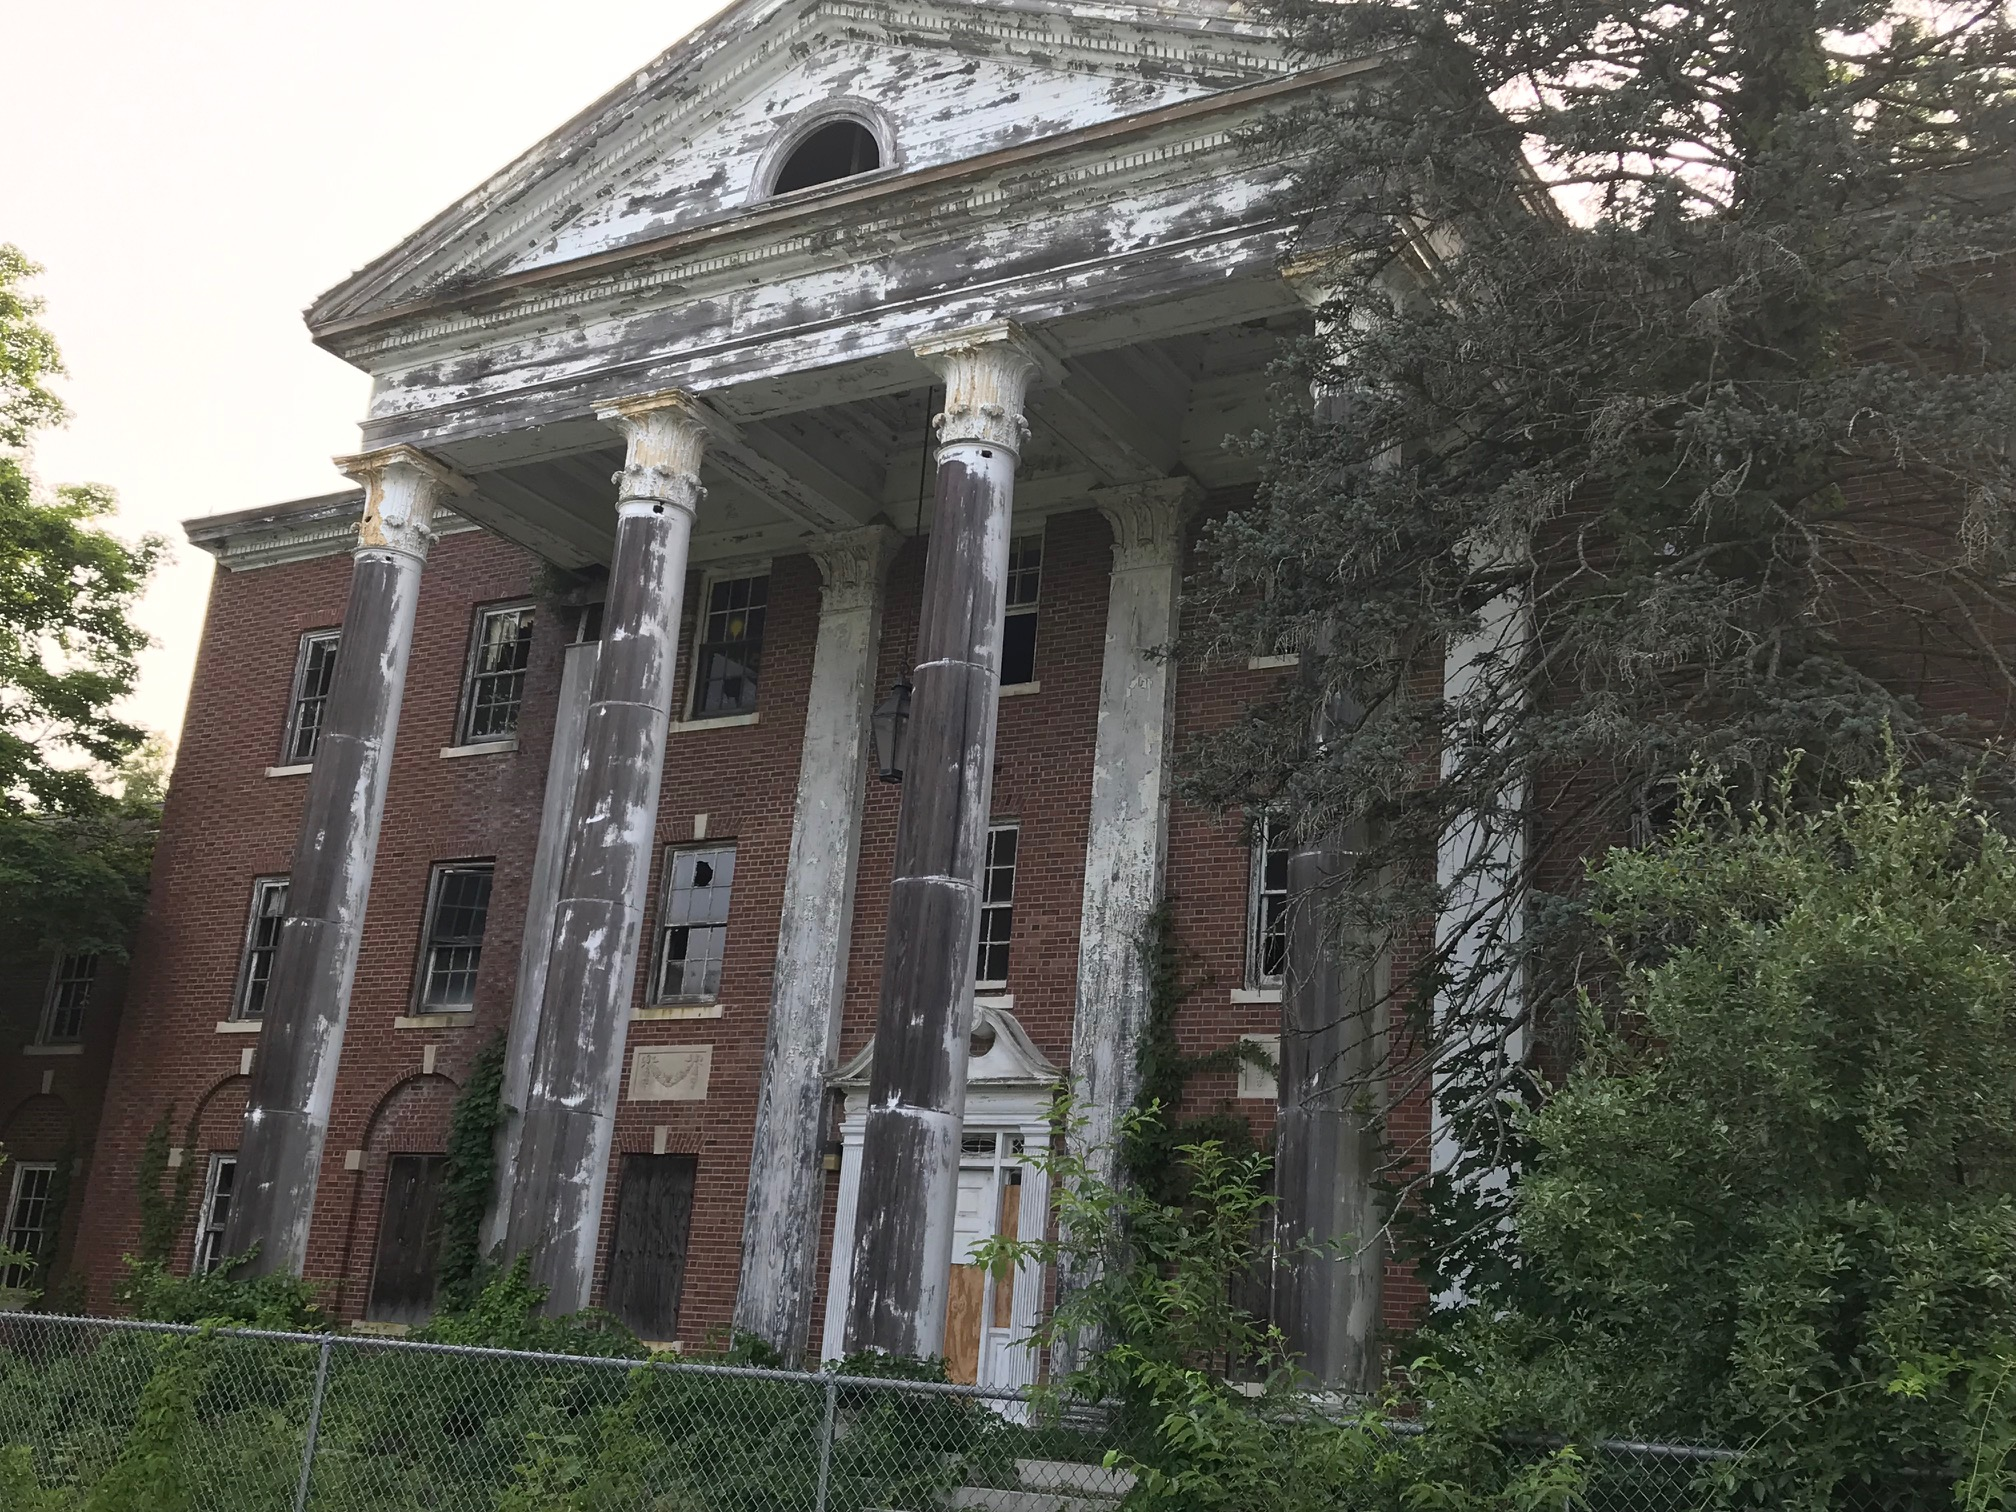 Probably the grandest building in the worst state of neglect.